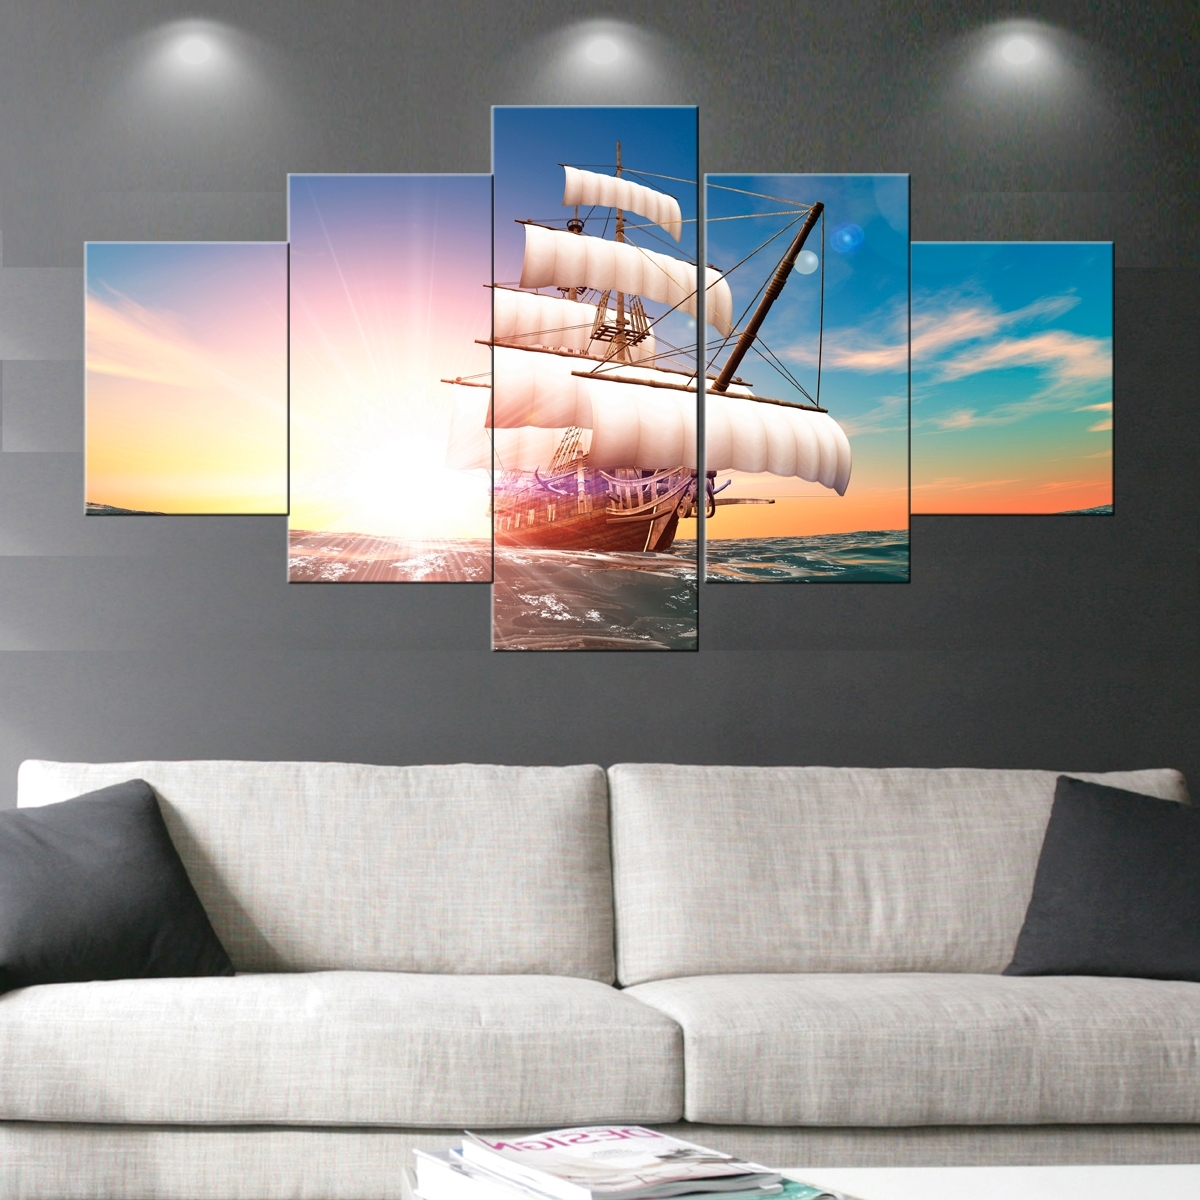 2018 Boat Wall Art In Boat Sail Paintings Wall Art Giclee Canvas Prints Landscape (View 8 of 15)